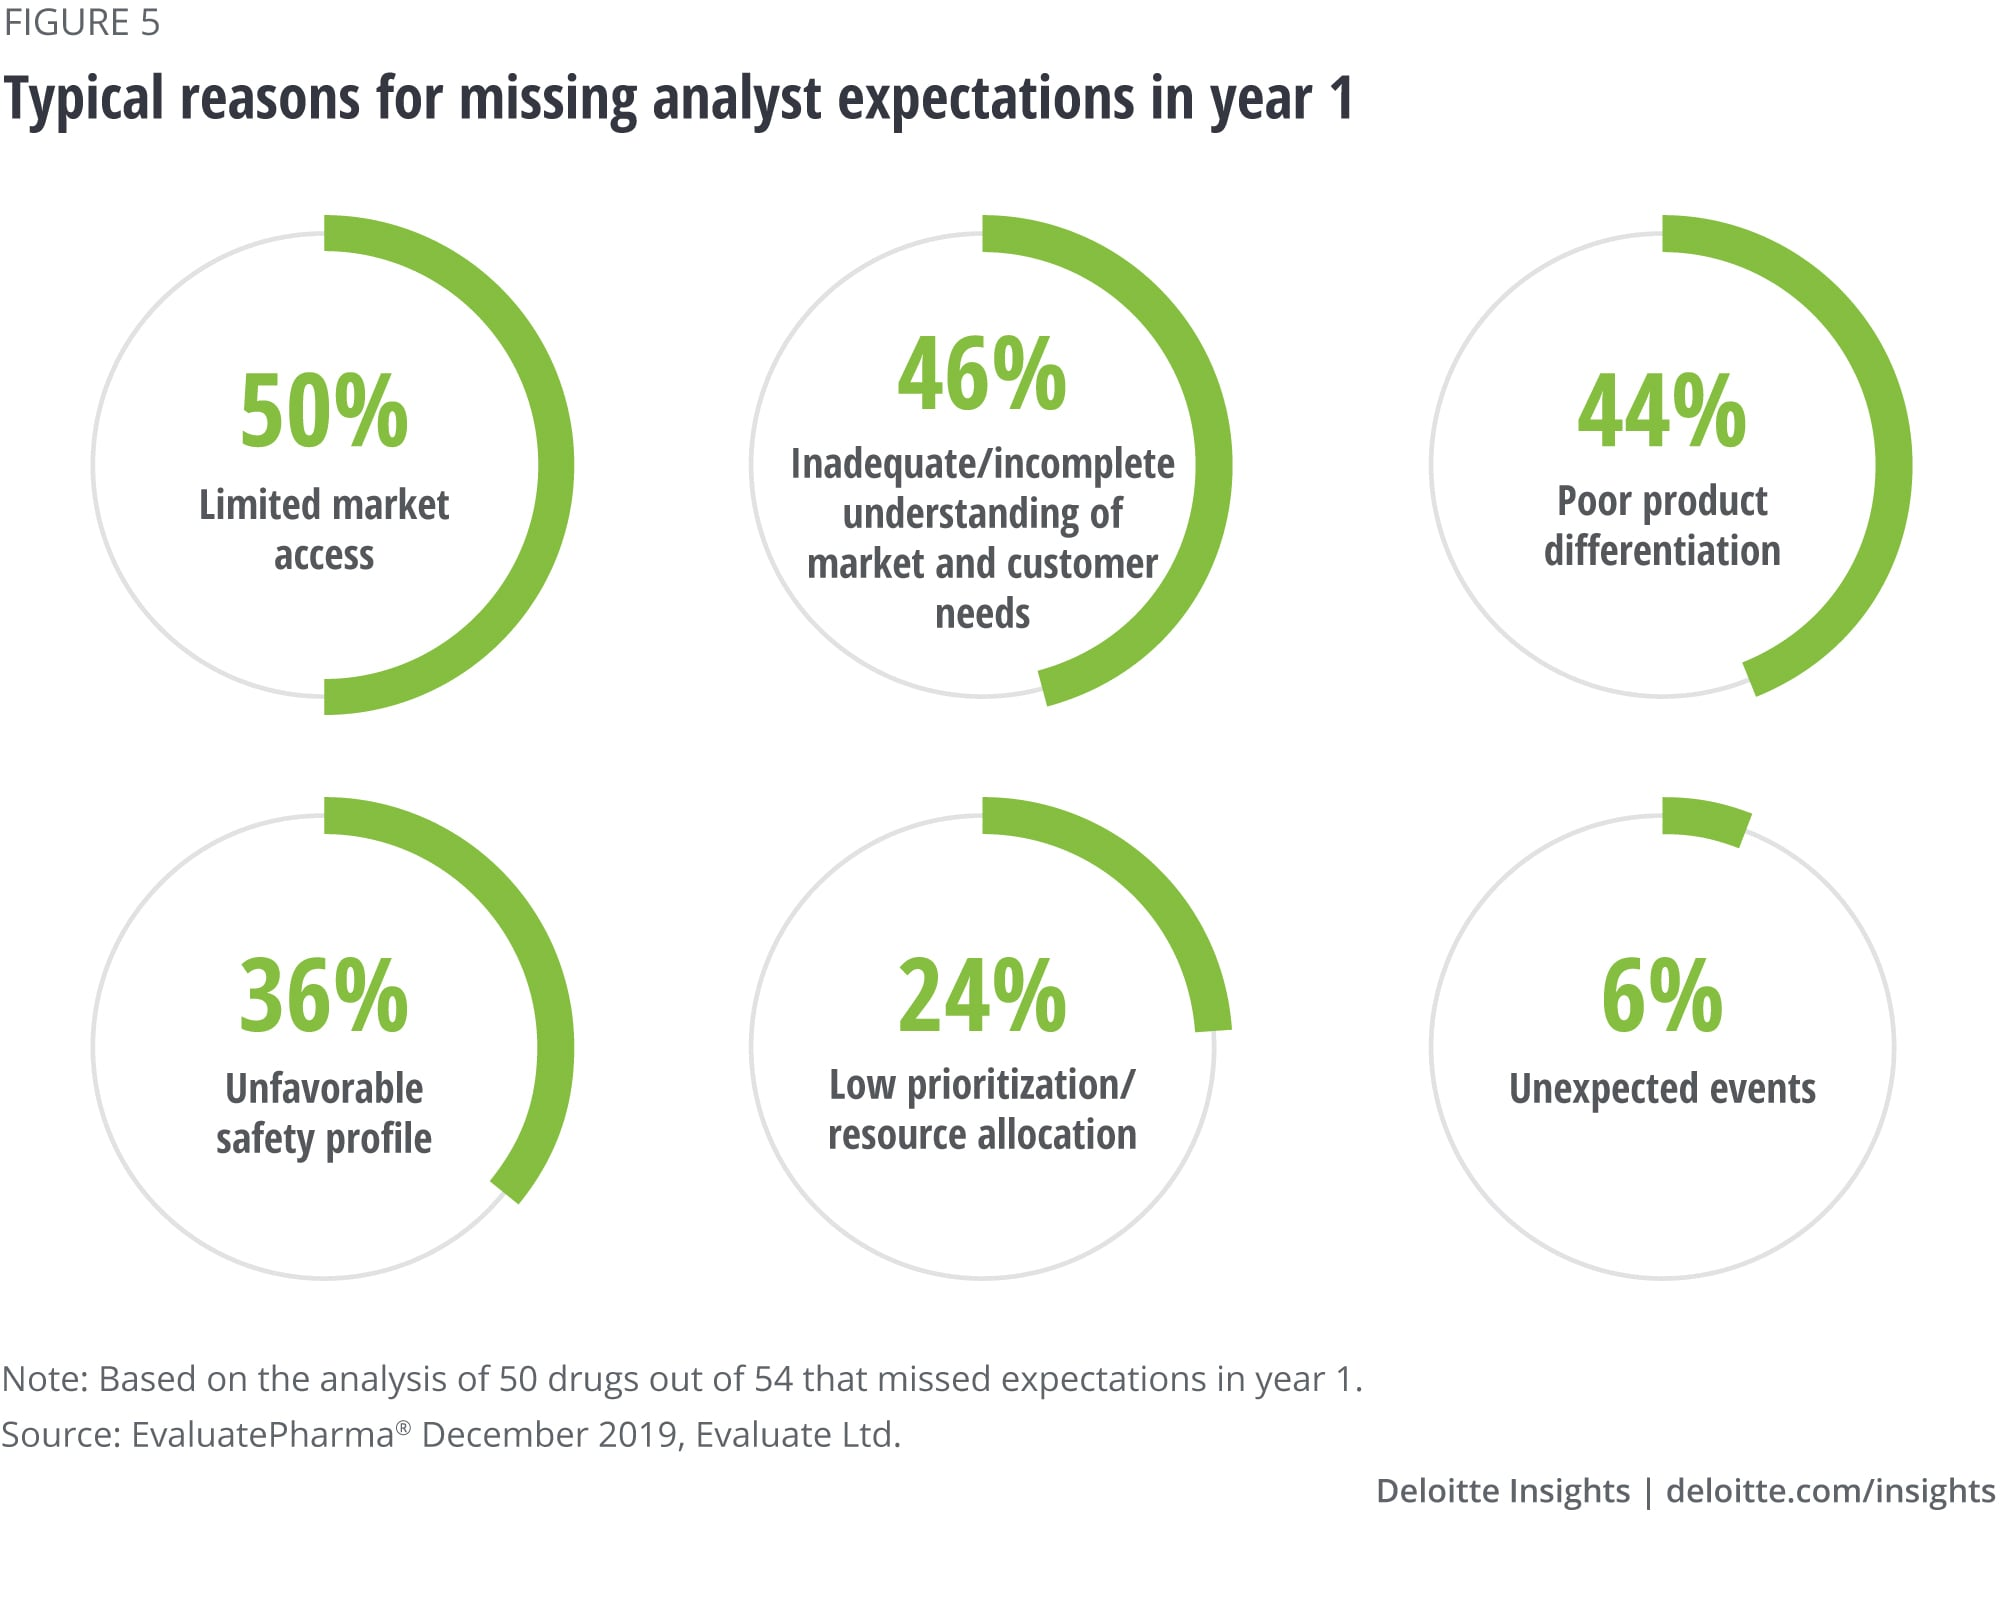 Limited market access topped the reasons for missing analyst expectations in year 1